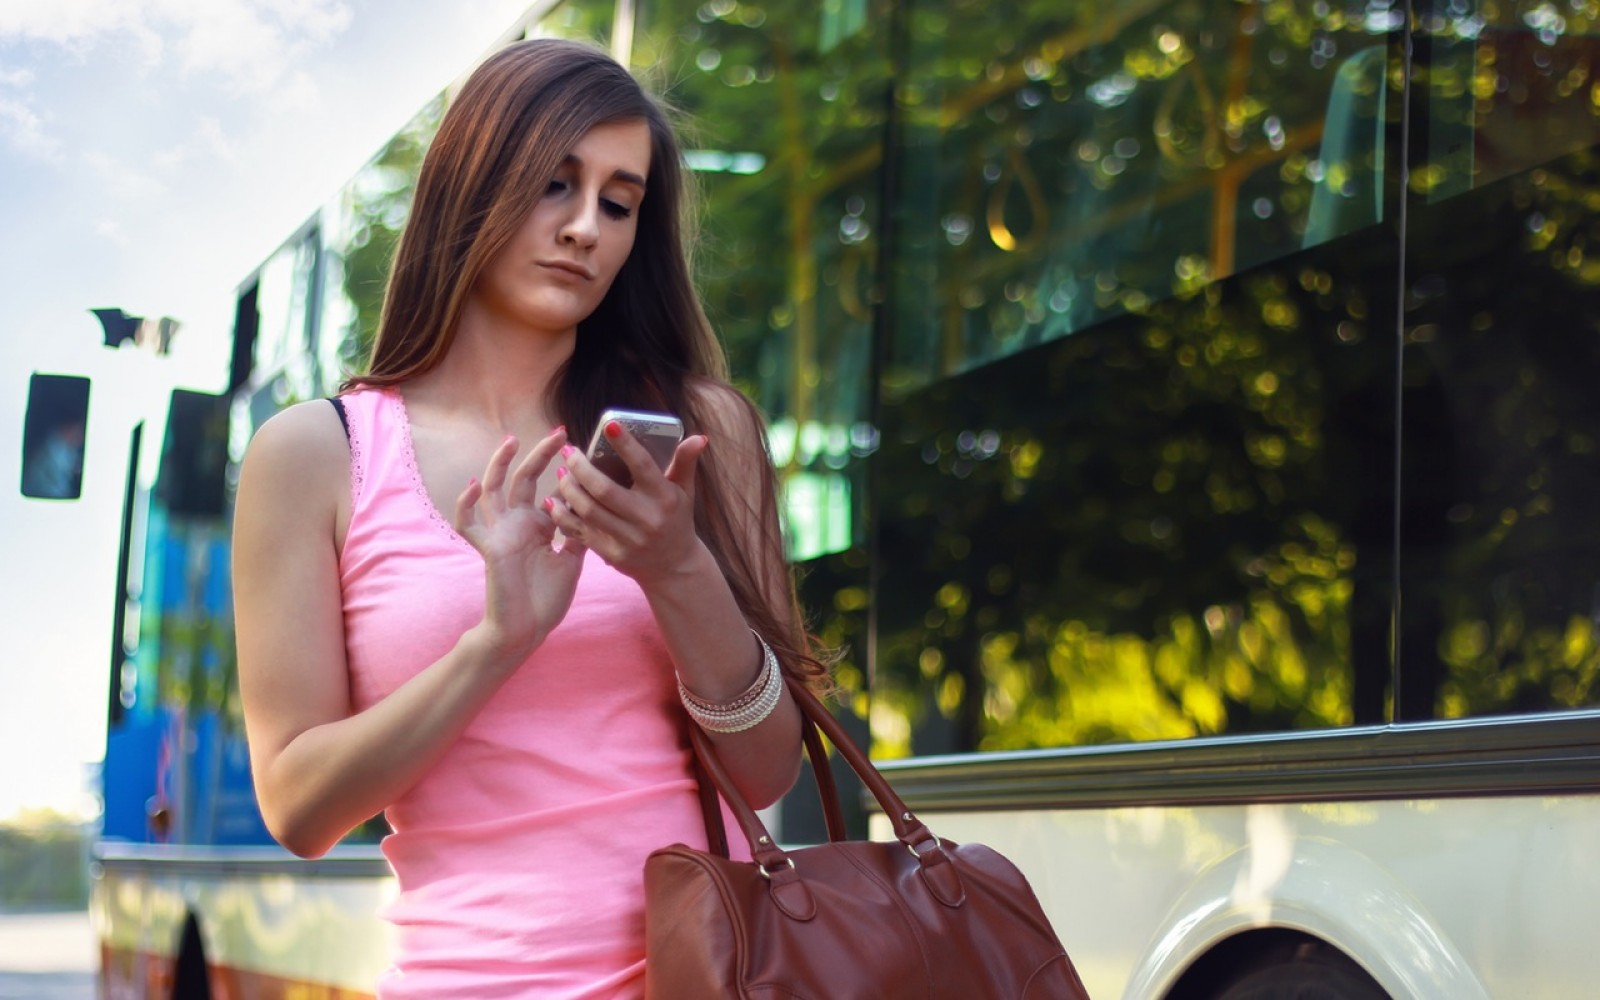 50 Flirty Moves To Use When You're Texting Your Latest Crush